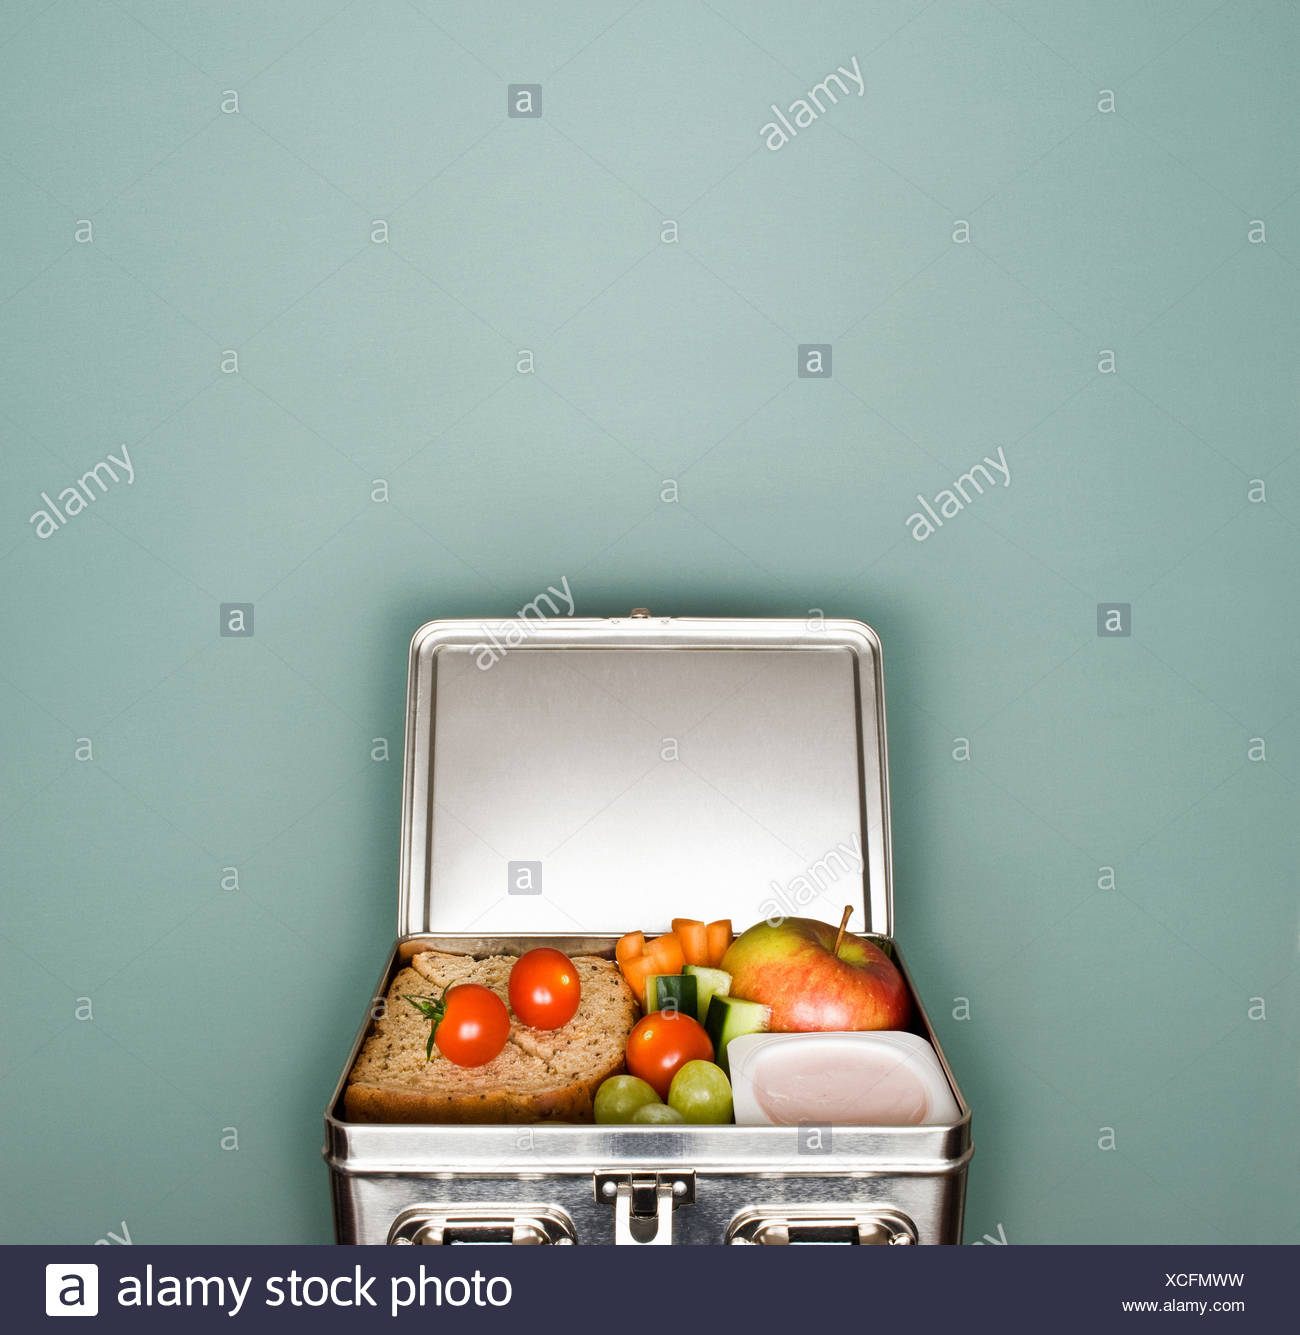 A lunch box - Stock Image